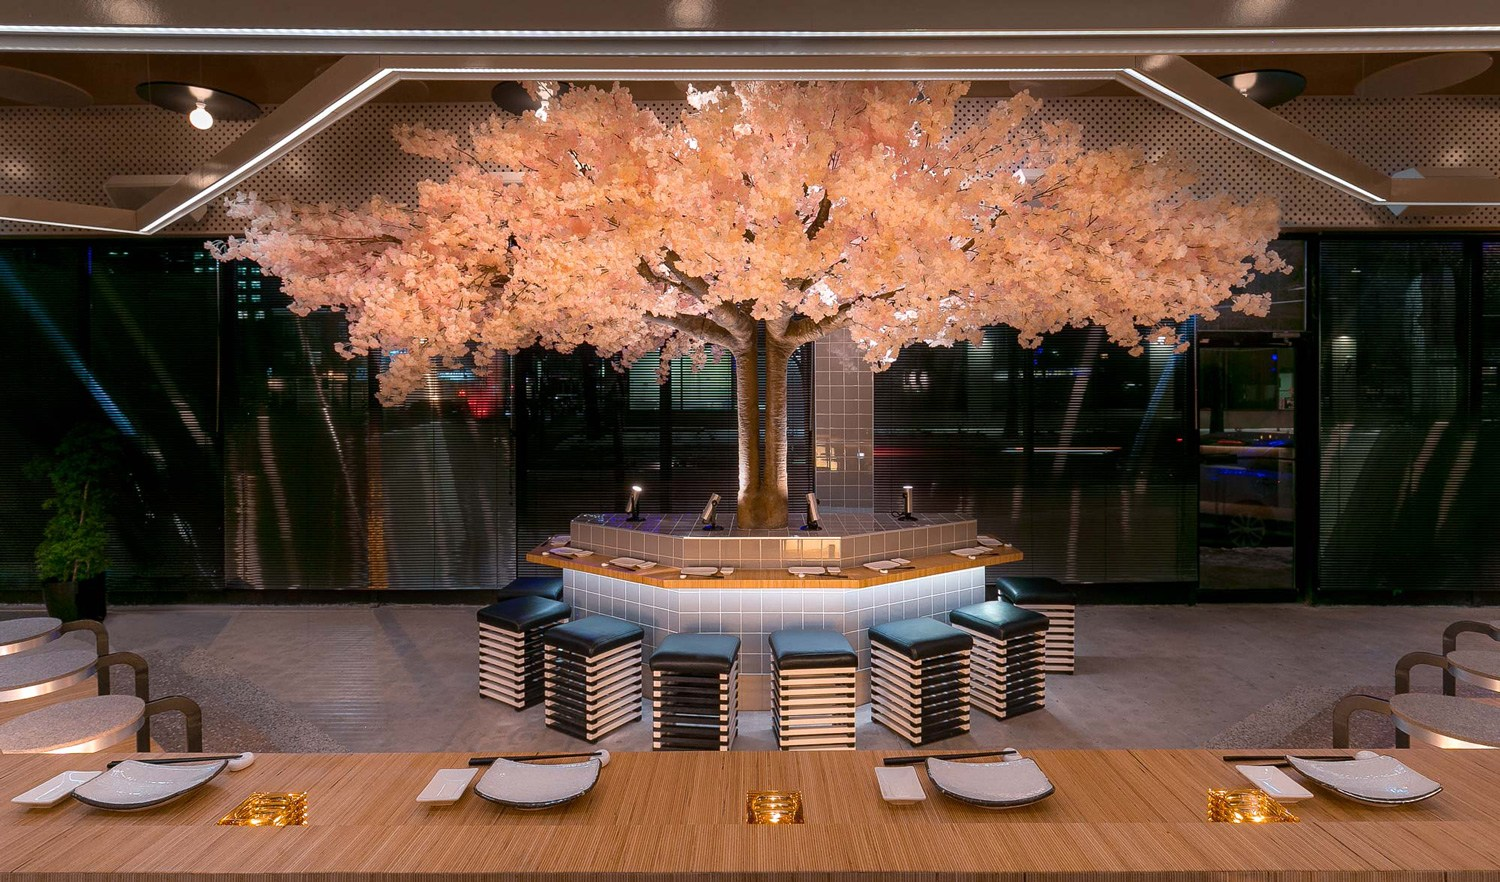 Le Blossom A Japanese Restaurant Design By M 233 Nard Dworkind